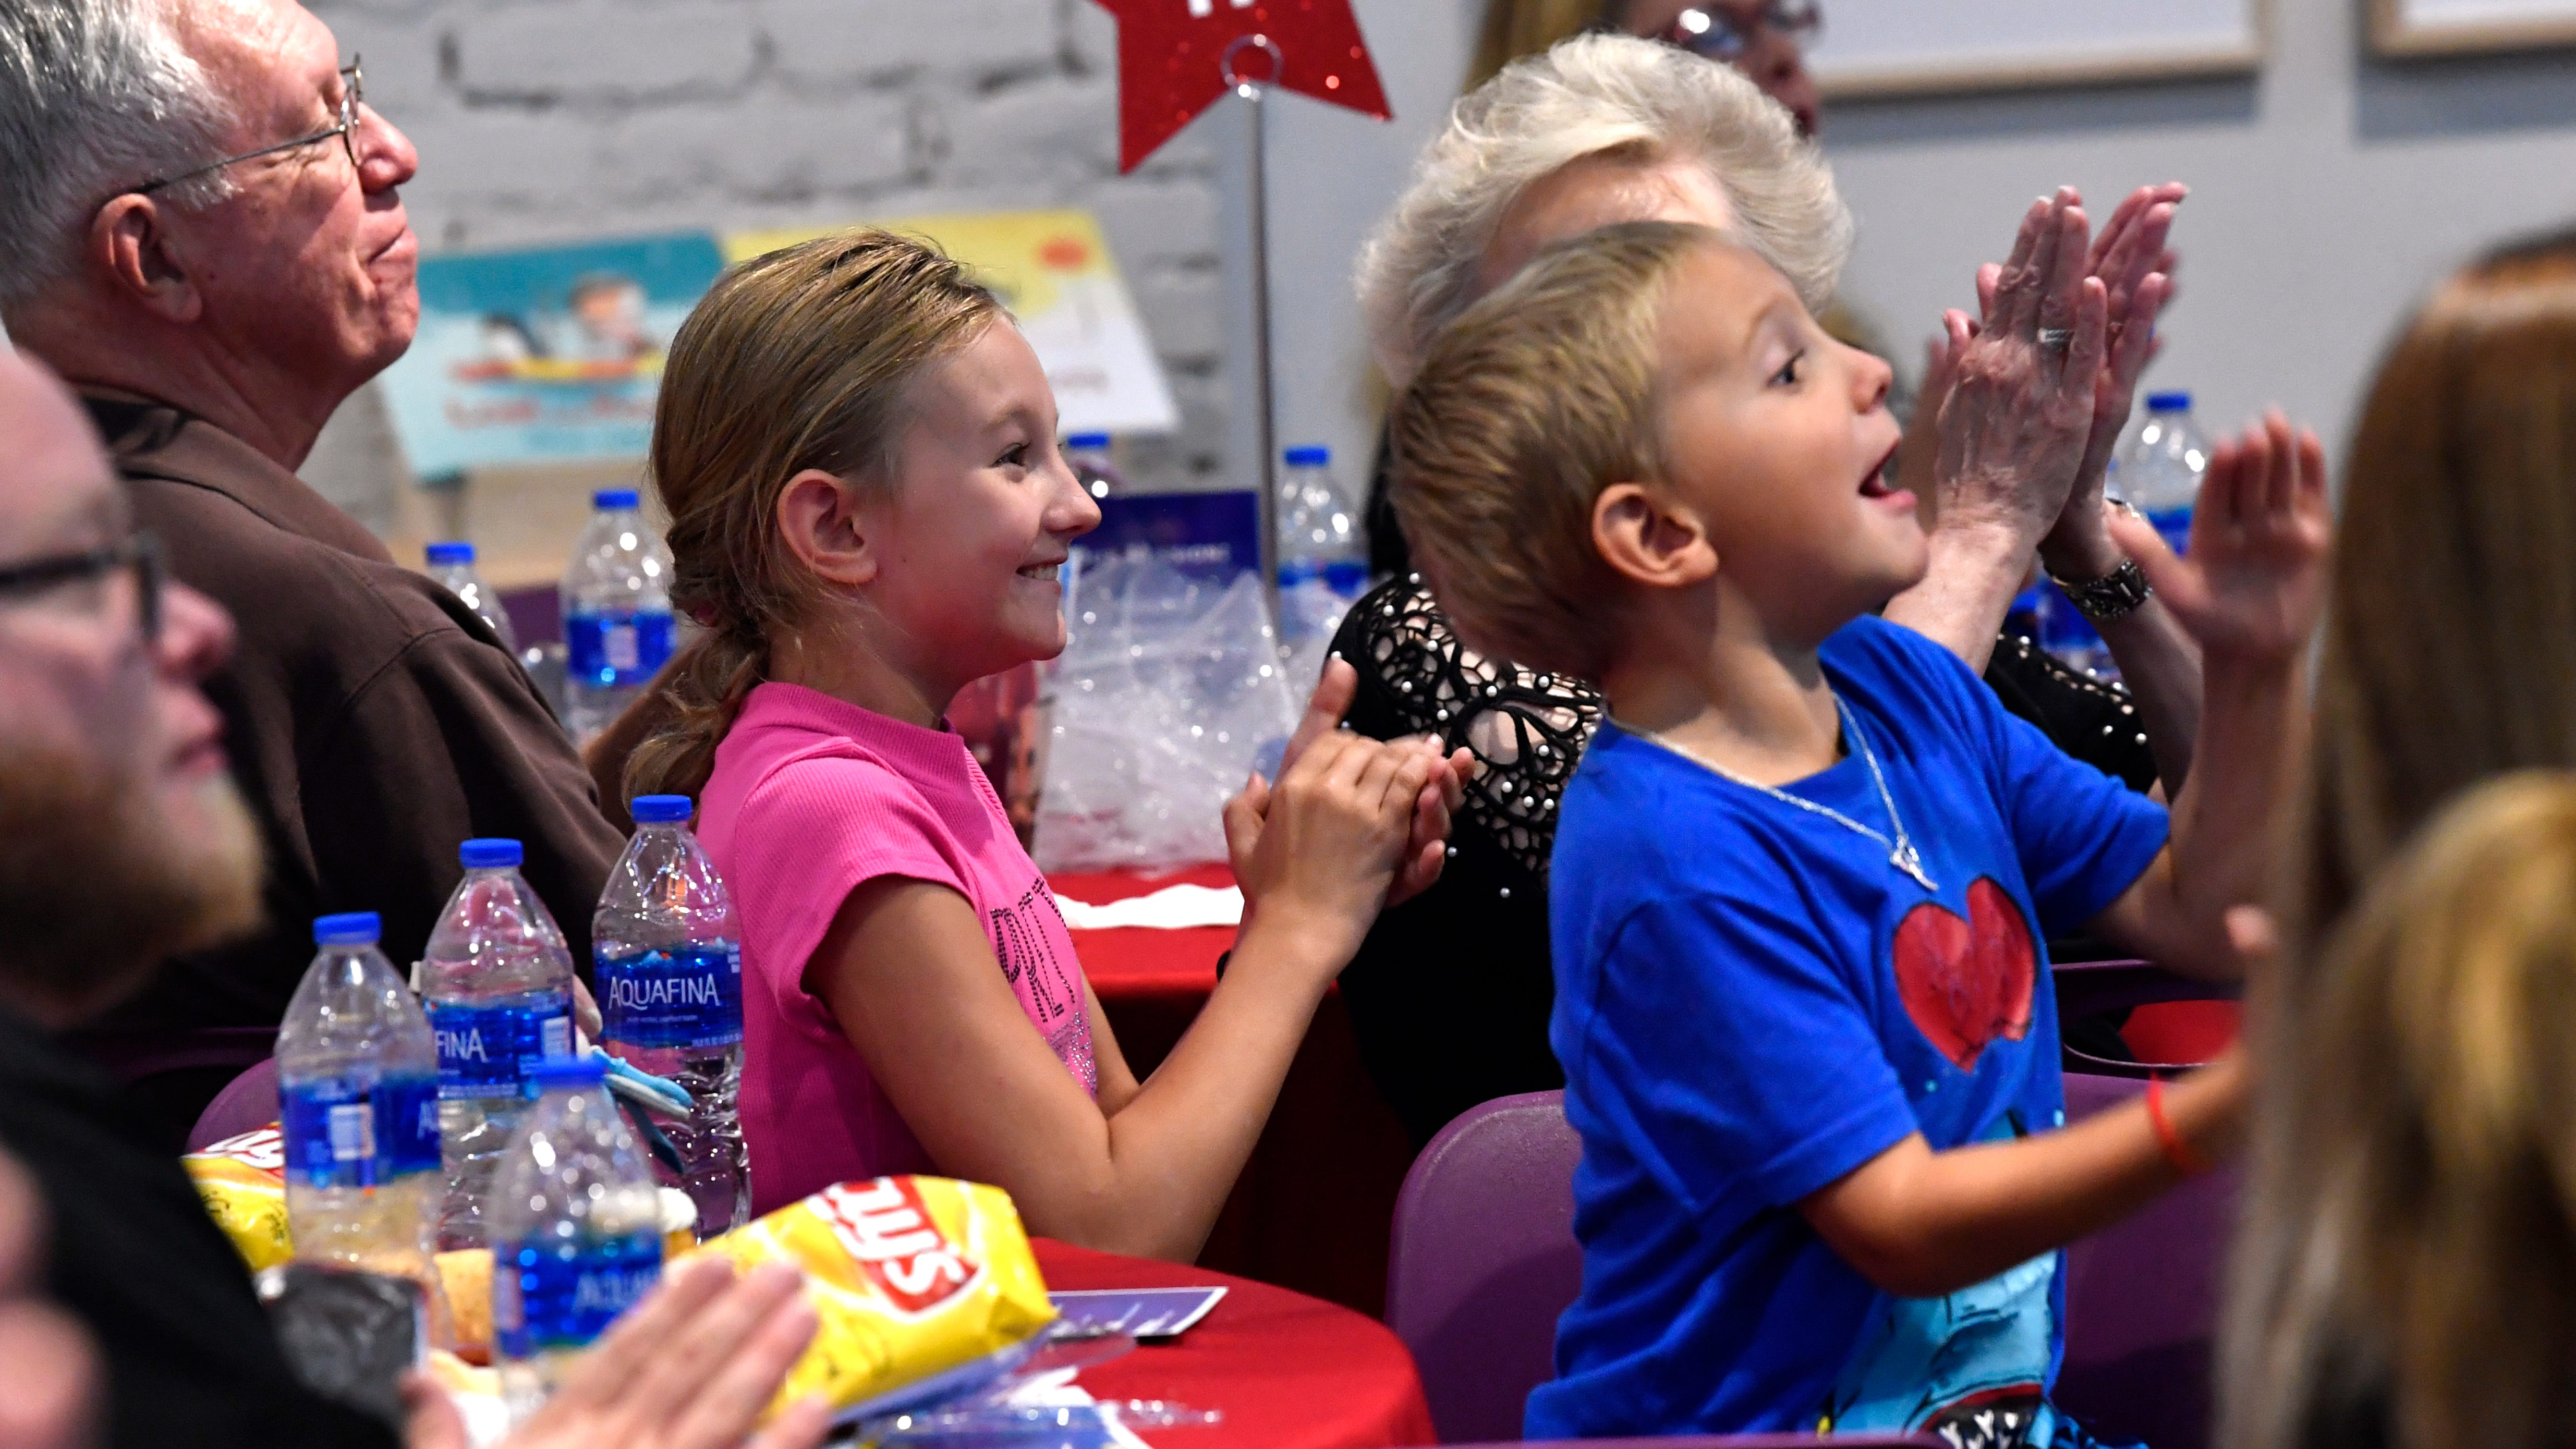 Katy Newman, 9; and her 6-year-old brother Matthew cheer their mother Cynthia Newman during Goodwill's got Talent, a talent show featuring workers from local Goodwill stores, August 9, 2018 at the National Center for Children's Illustrated Literature.